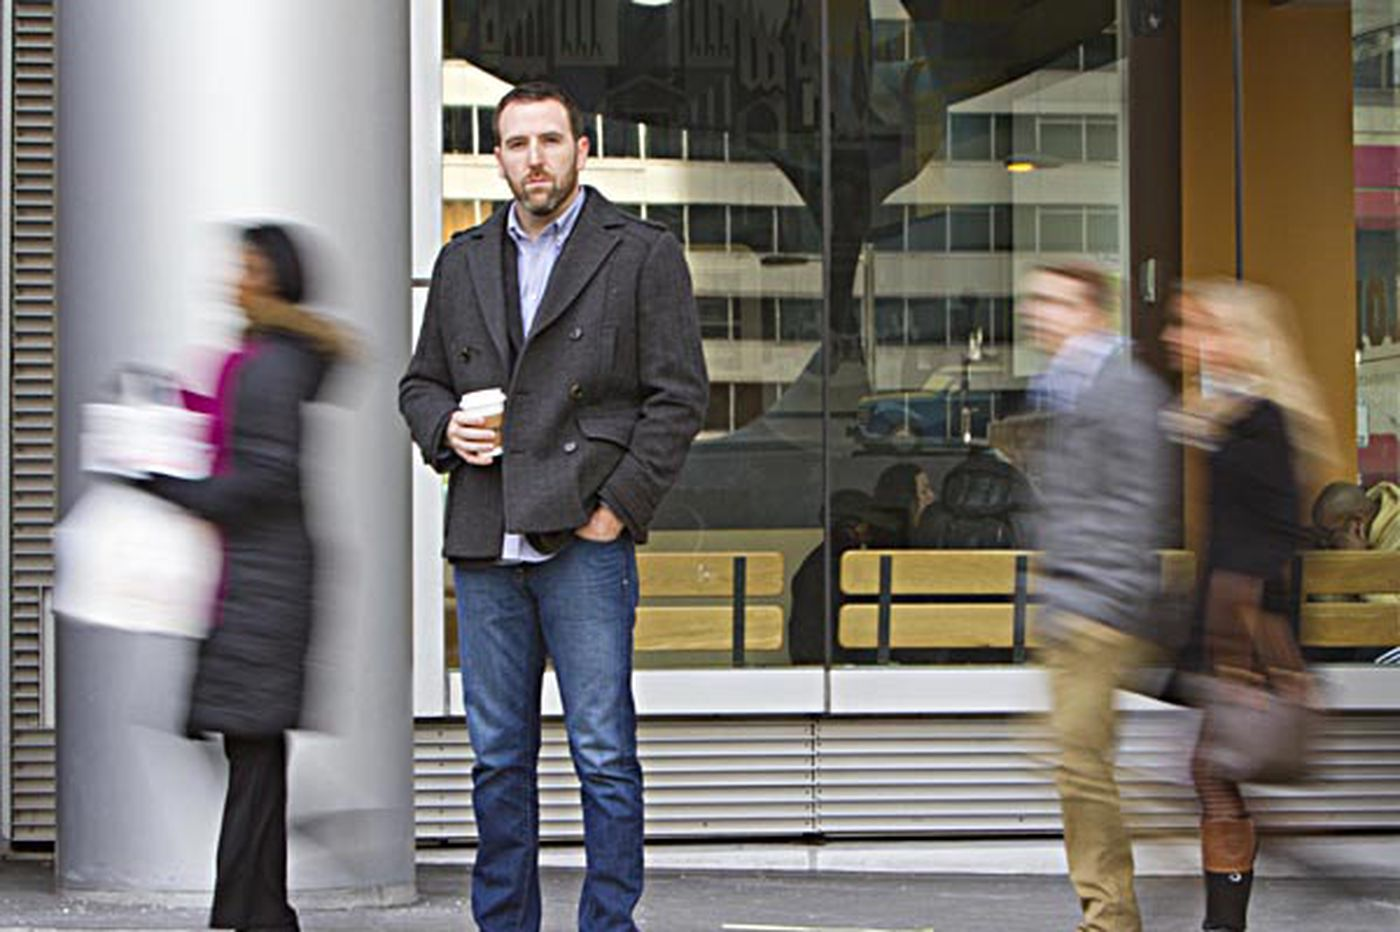 Pickpockets busy in Center City coffee shops and restaurants